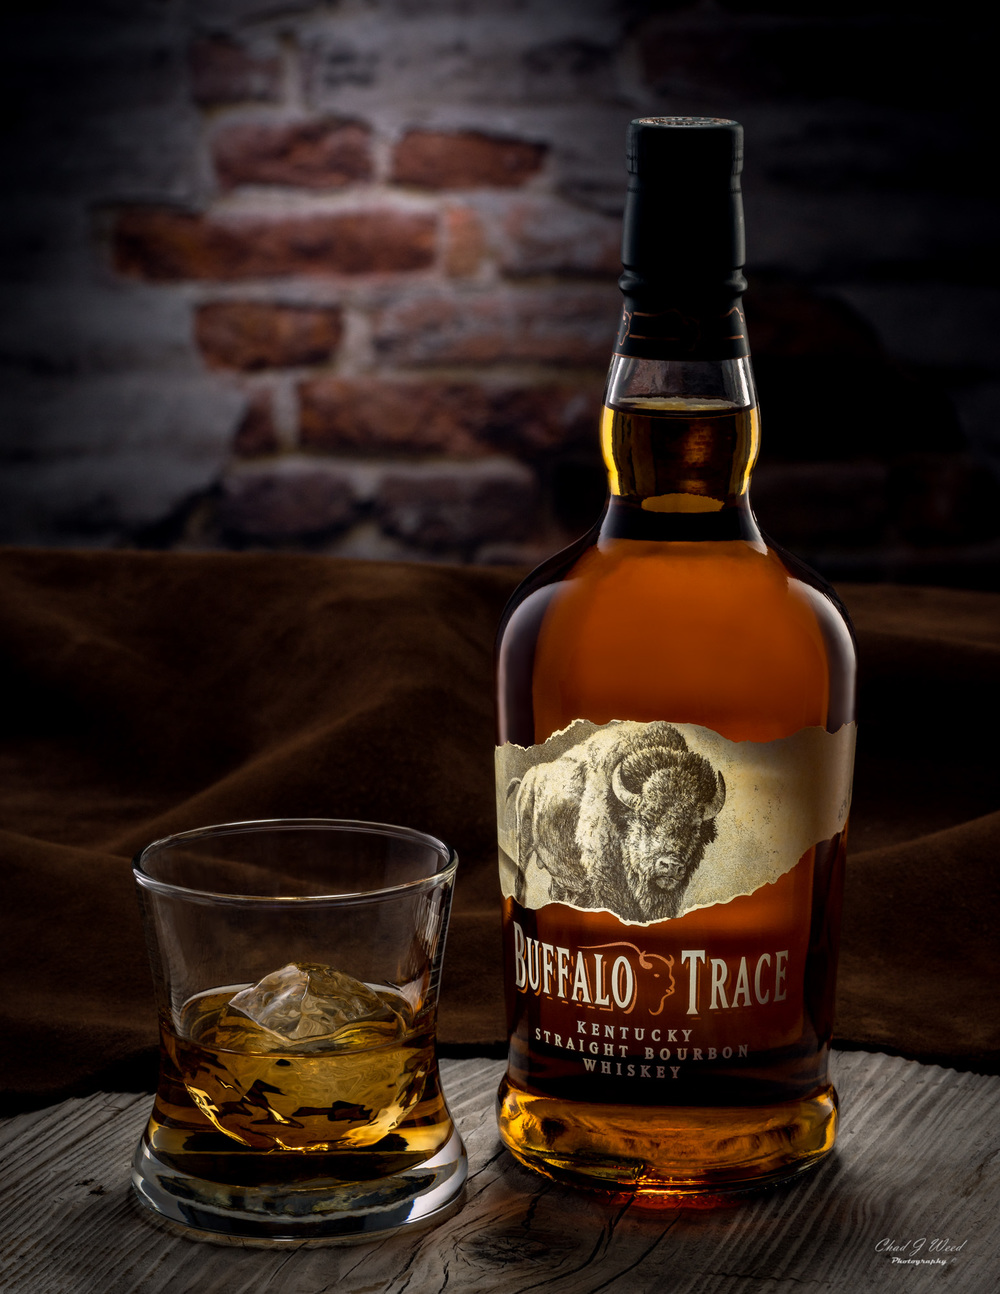 Buffalo Trace Whiskey by Arizona Commercial Beverage Photographer Chad J Weed